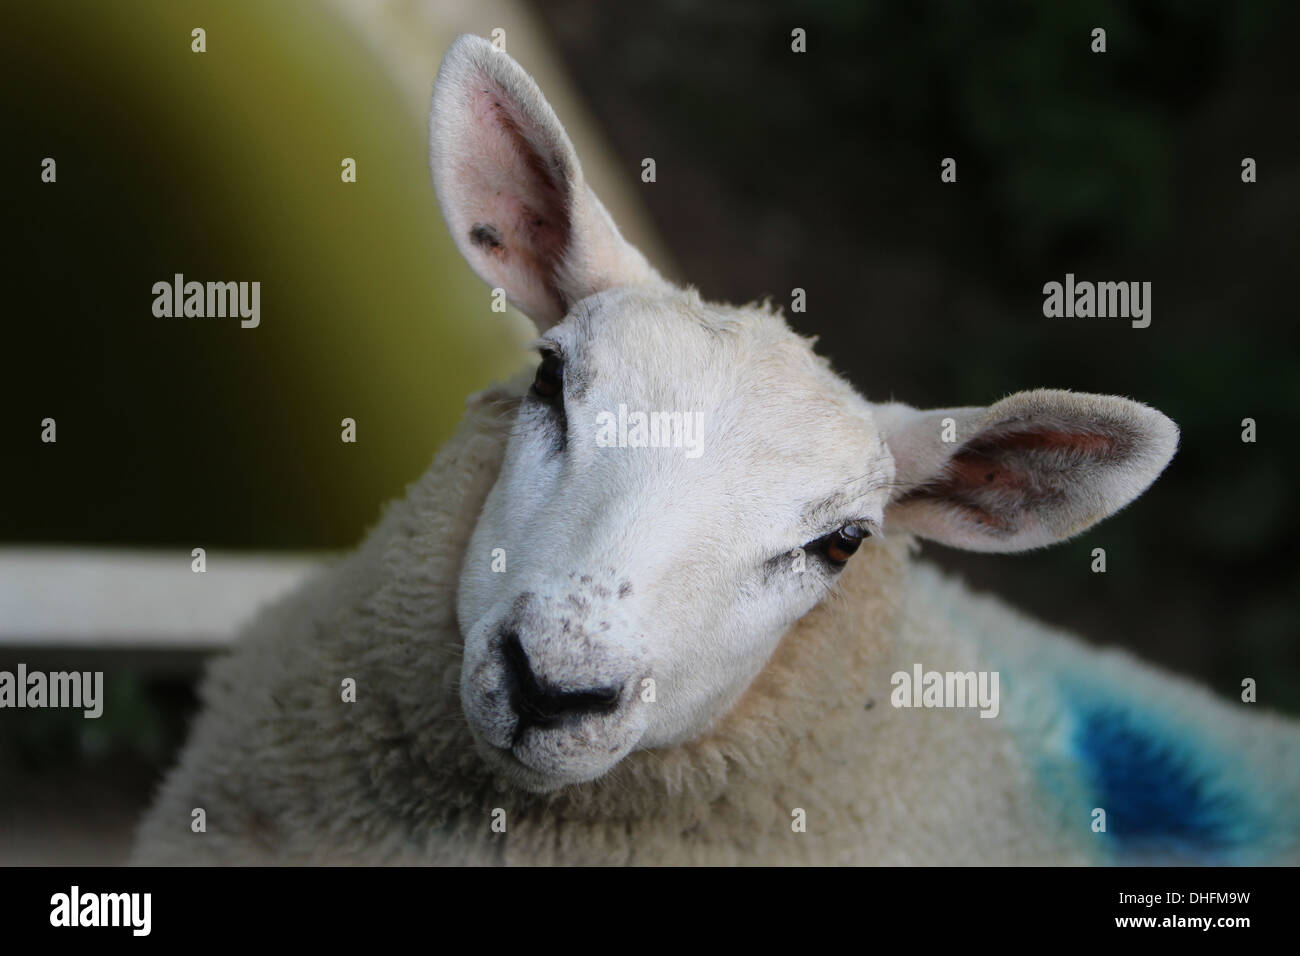 A close up of the head of a year old Lleyn sheep. - Stock Image